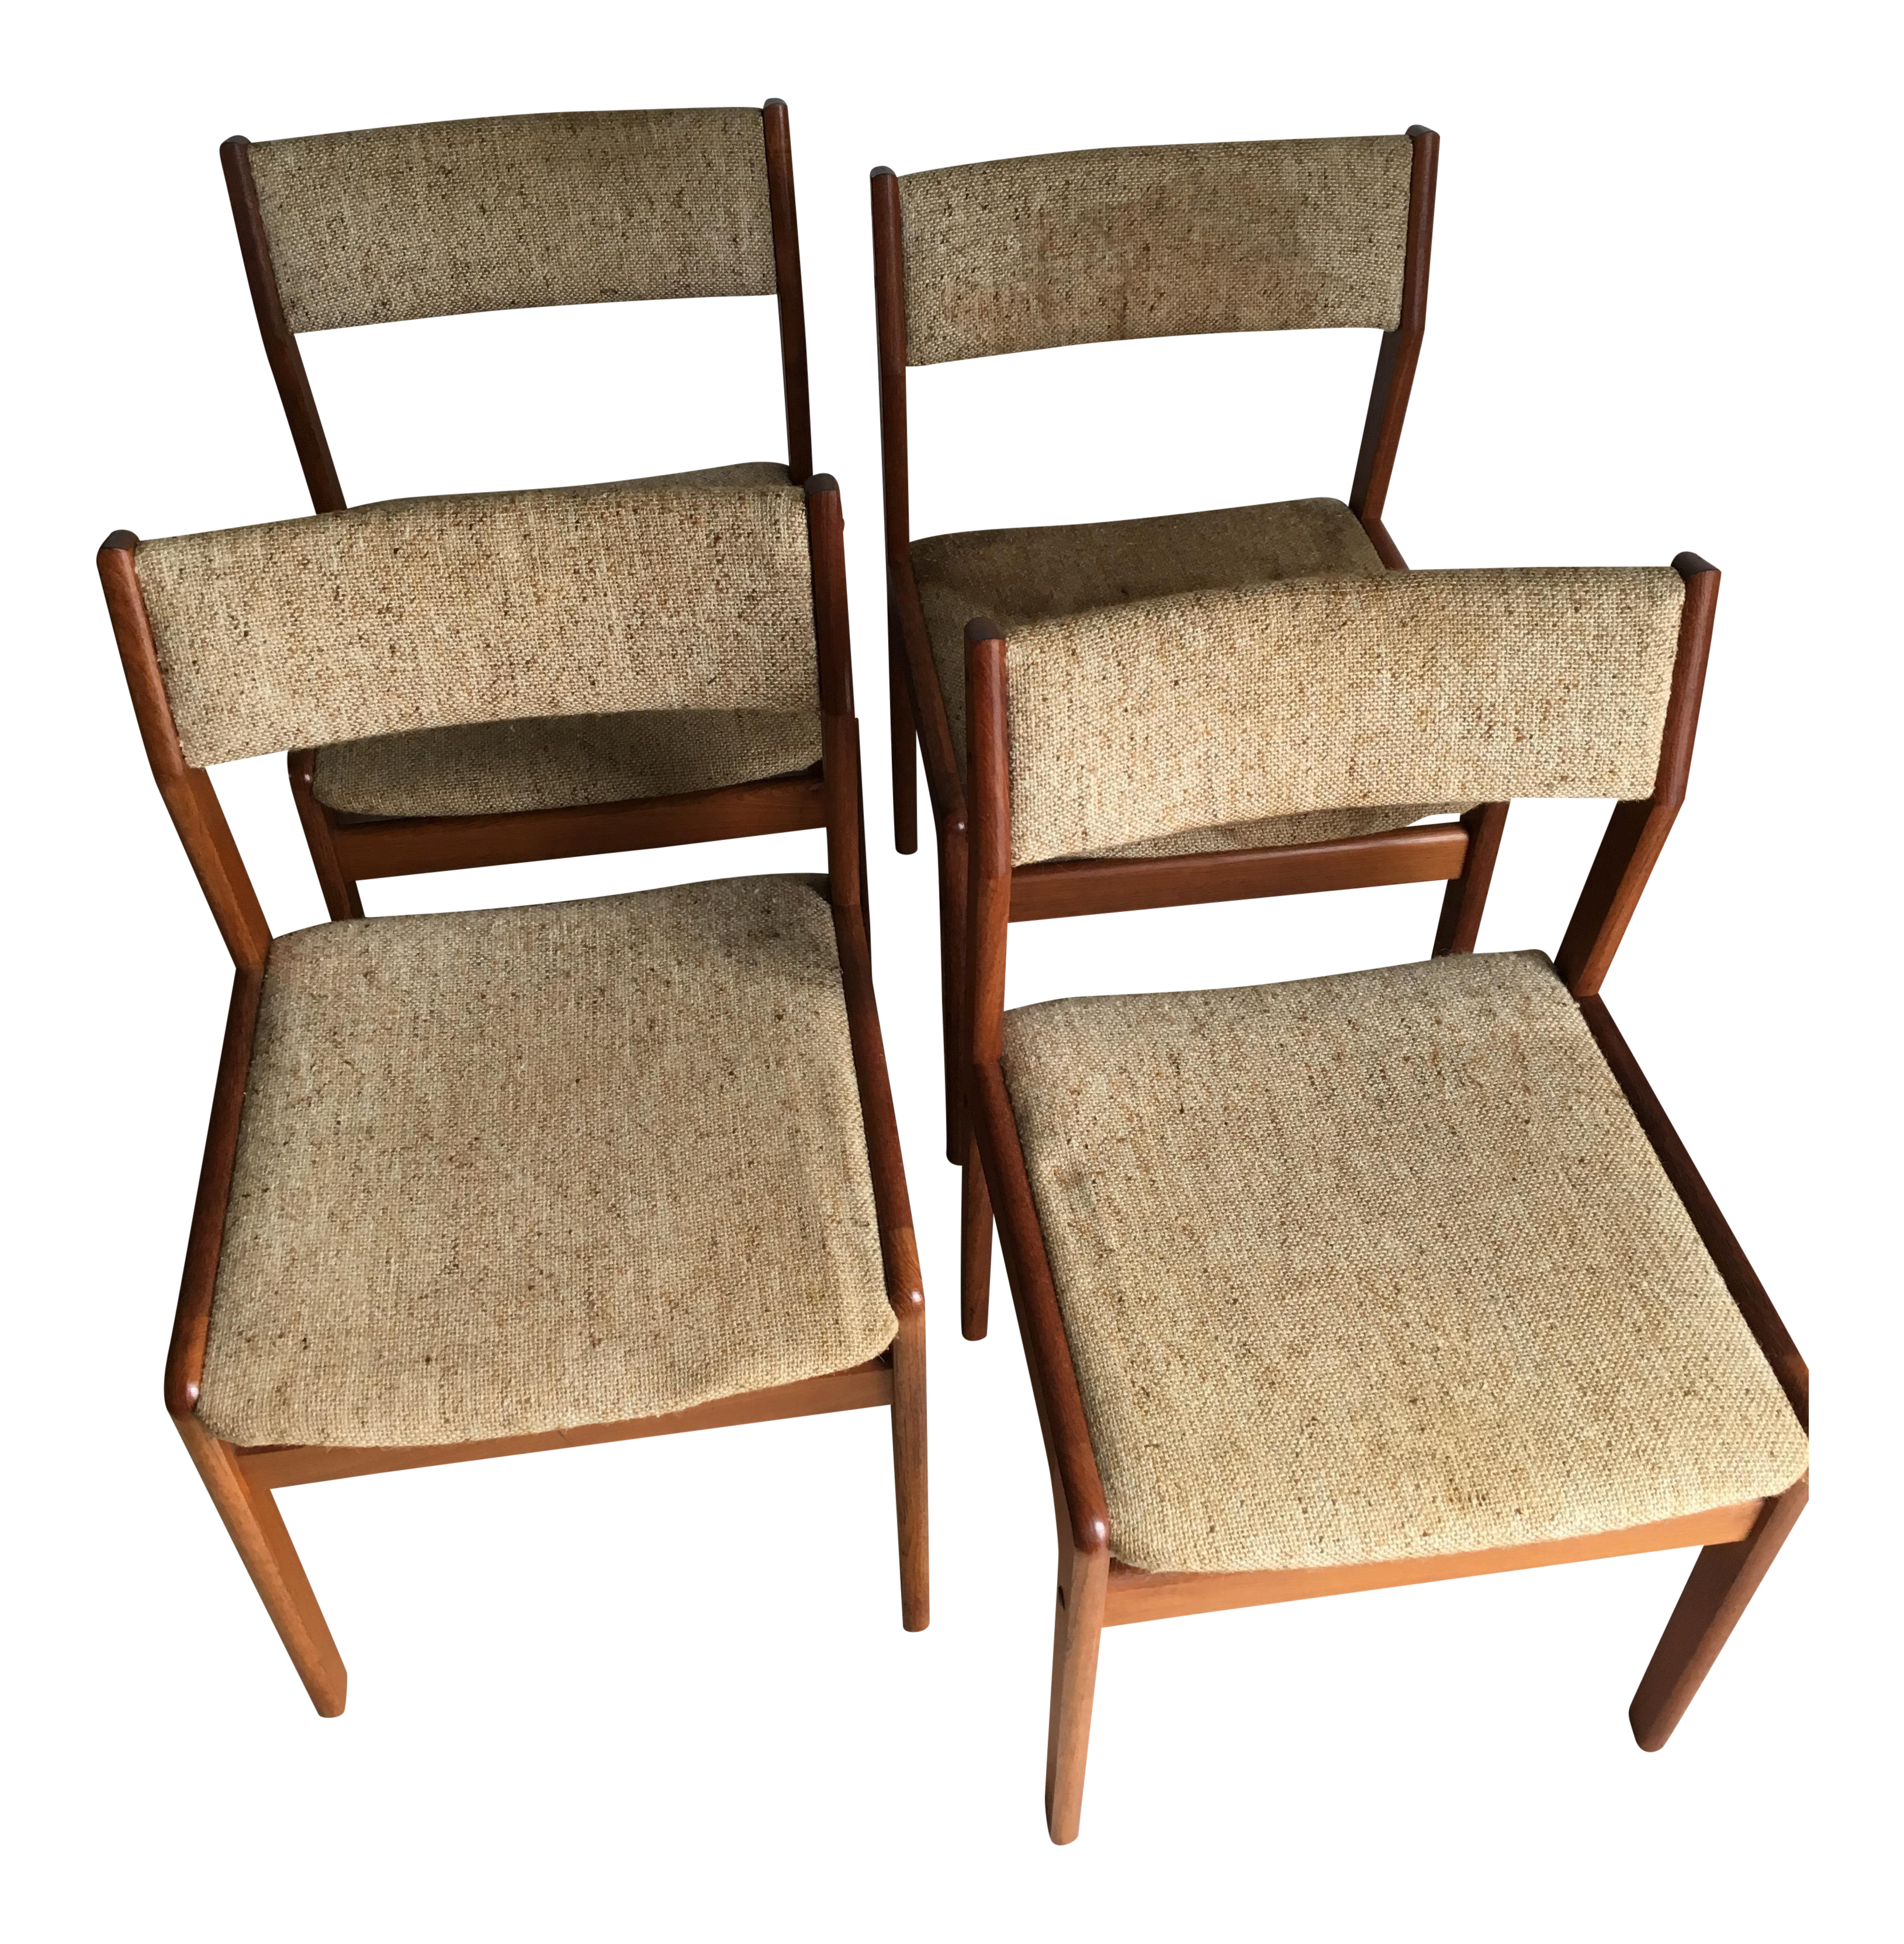 Ordinaire Vintage Mid Century Modern Danish Dining Chairs By Domus Damica  Set Of 4  For Sale